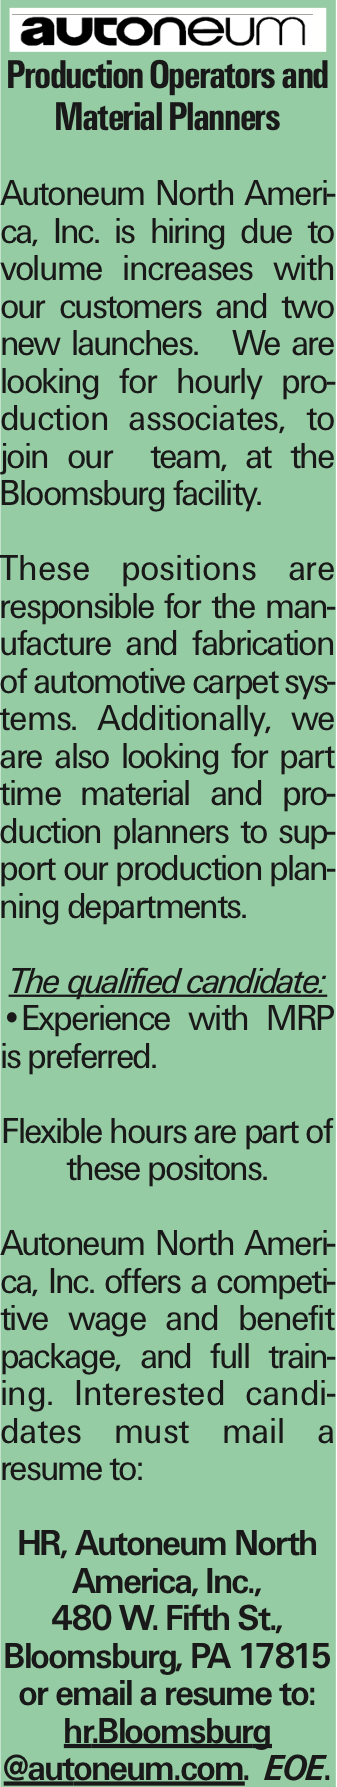 Production Operators and Material Planners Autoneum North America, Inc. is hiring due to volume increases with our customers and two new launches. We are looking for hourly production associates, to join our team, at the Bloomsburg facility. These positions are responsible for the manufacture and fabrication of automotive carpet systems. Additionally, we are also looking for part time material and production planners to support our production planning departments. The qualified candidate: --Experience with MRP is preferred. Flexible hours are part of these positons. Autoneum North America, Inc. offers a competitive wage and benefit package, and full training. Interested candidates must mail a resume to: HR, Autoneum North America, Inc., 480 W. Fifth St., Bloomsburg, PA 17815 or email a resume to: hr.Bloomsburg @autoneum.com. EOE. As published in the Press Enterprise.